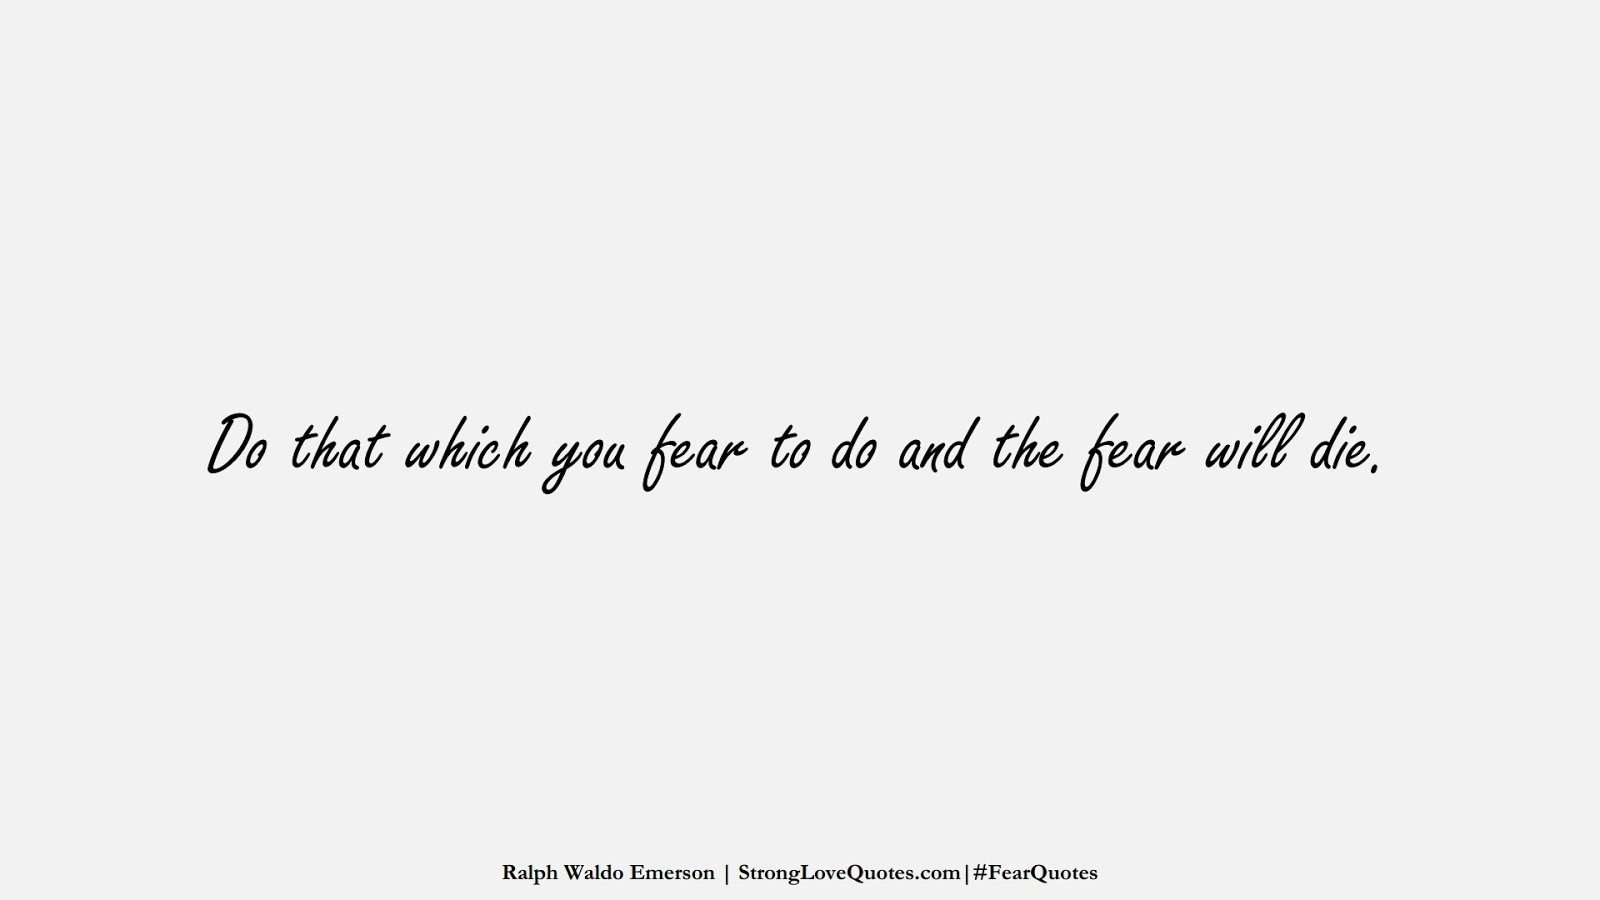 Do that which you fear to do and the fear will die. (Ralph Waldo Emerson);  #FearQuotes